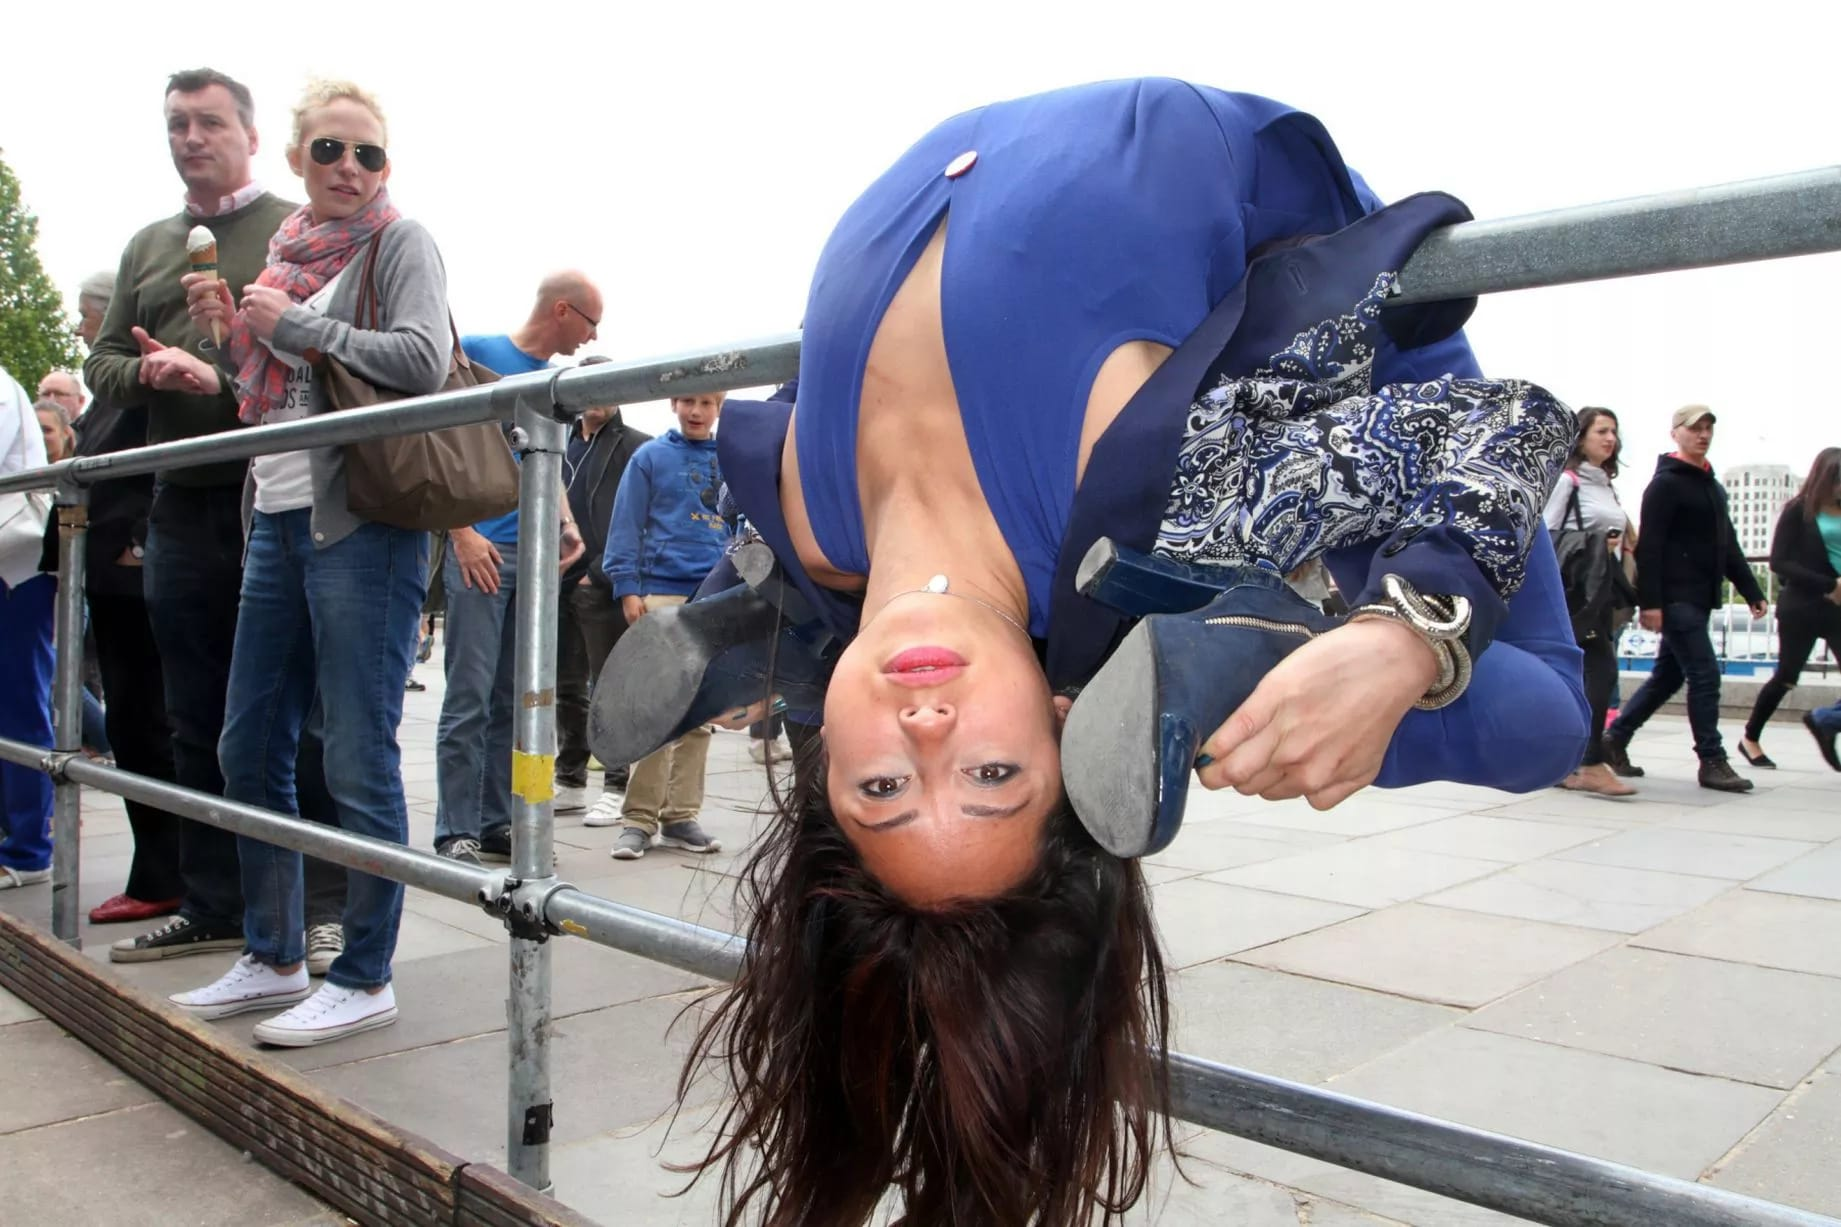 20-Random-People-Caught-Publicly-in-Awkward-Positions-16